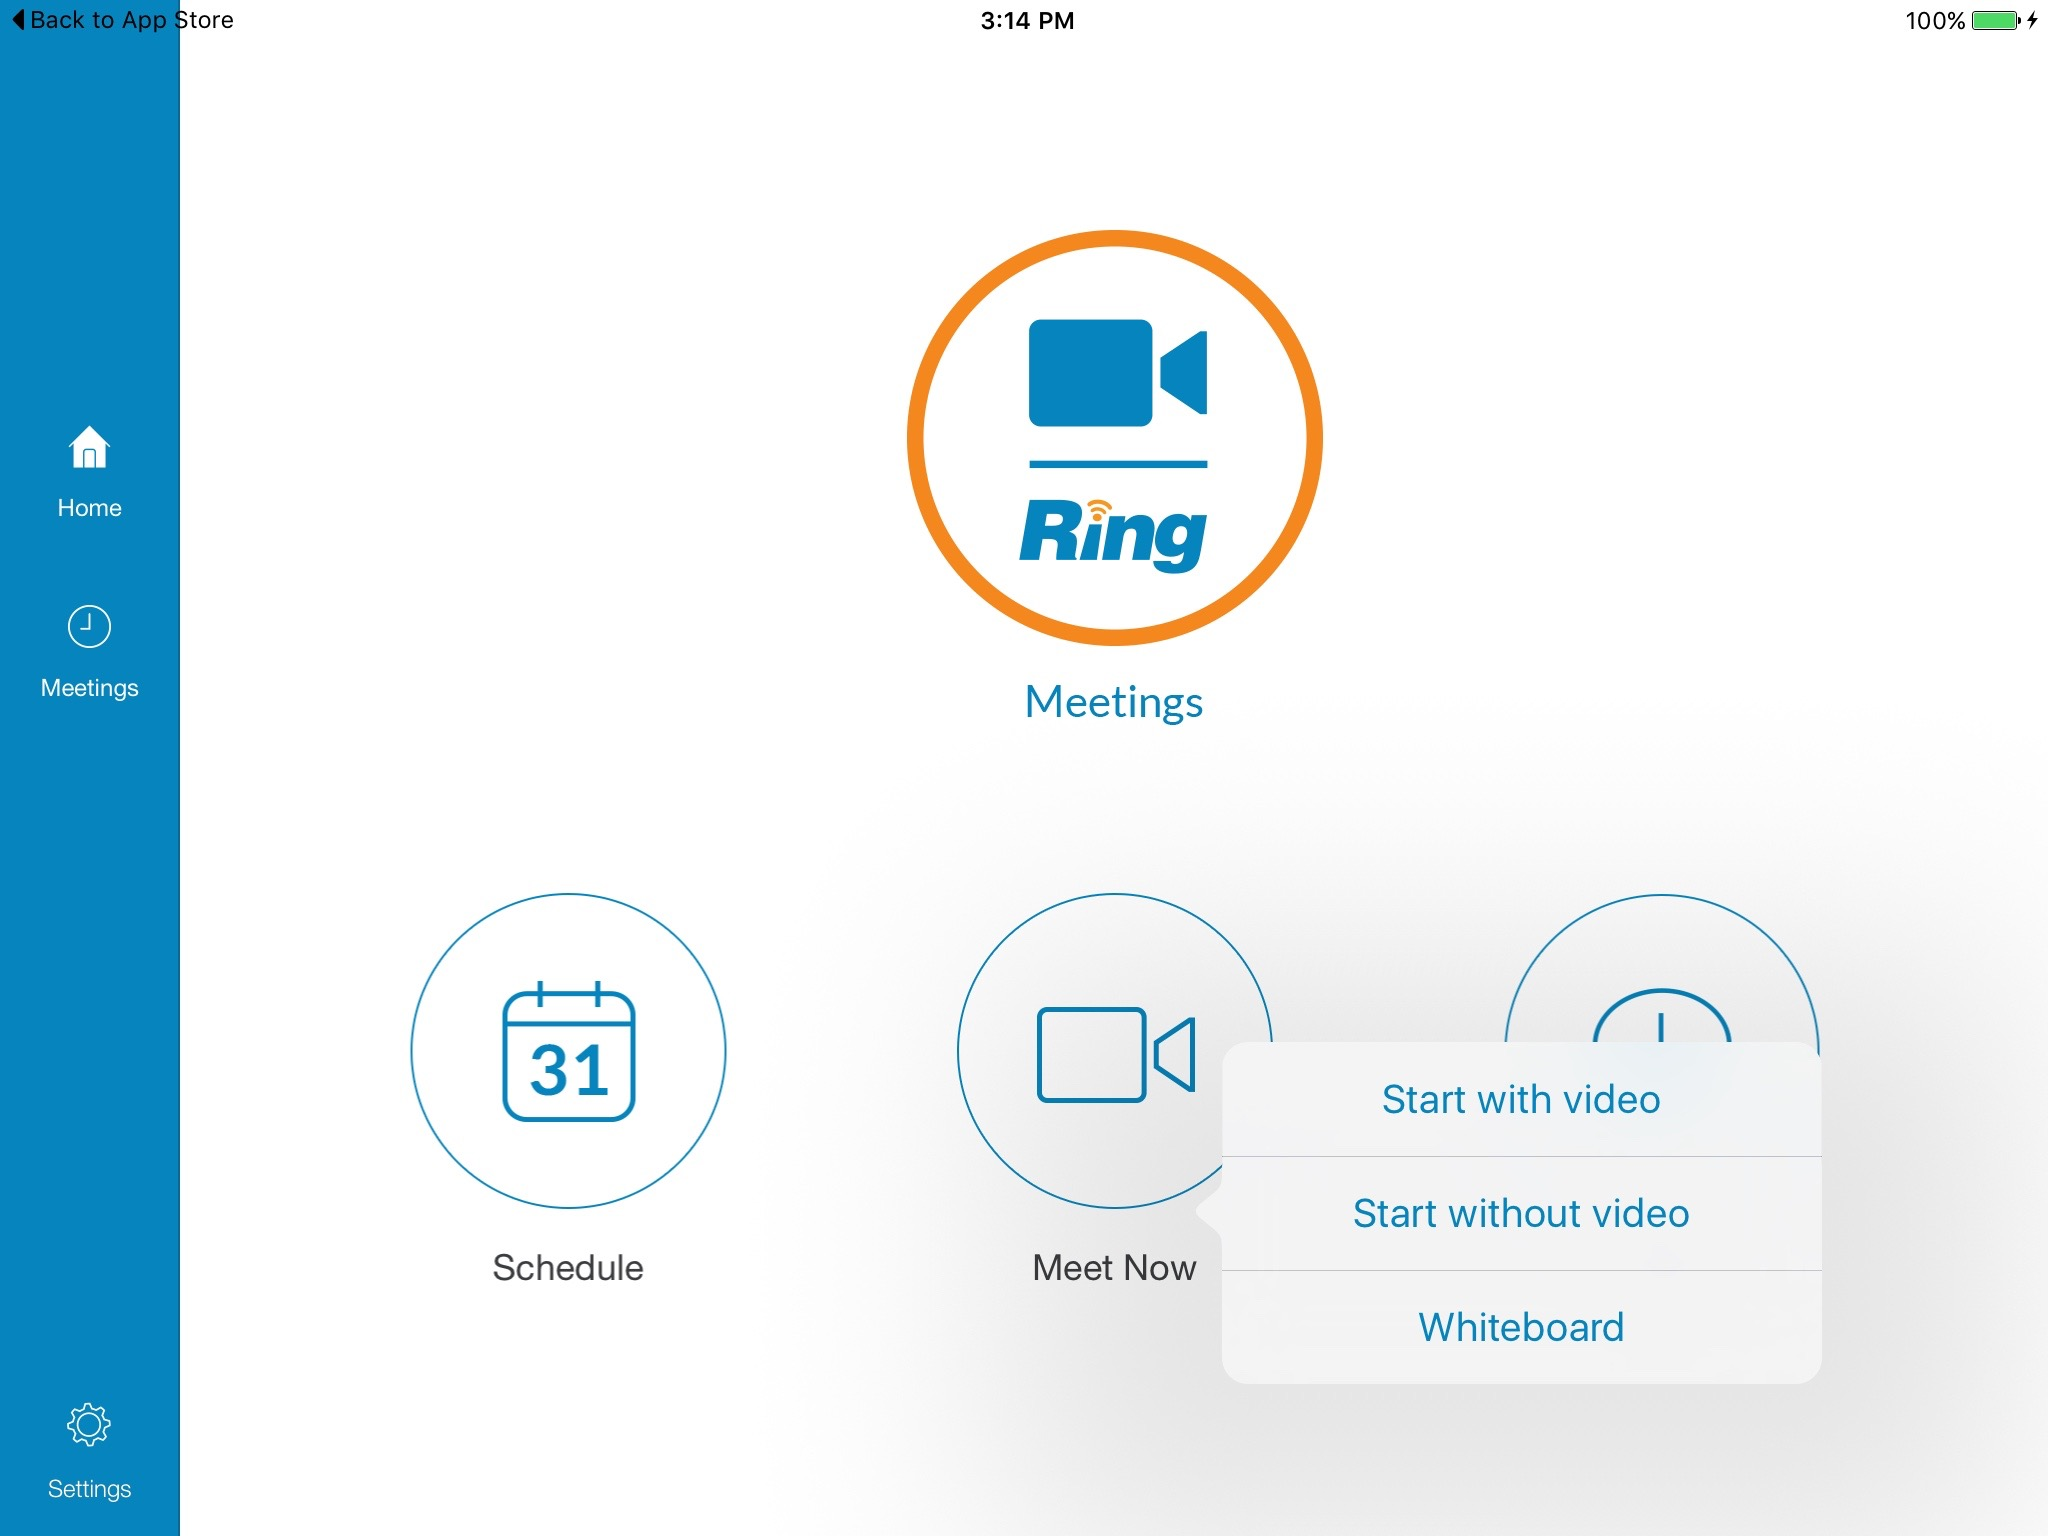 RingCentral Meetings App for PC, Mac, Android , and iOS